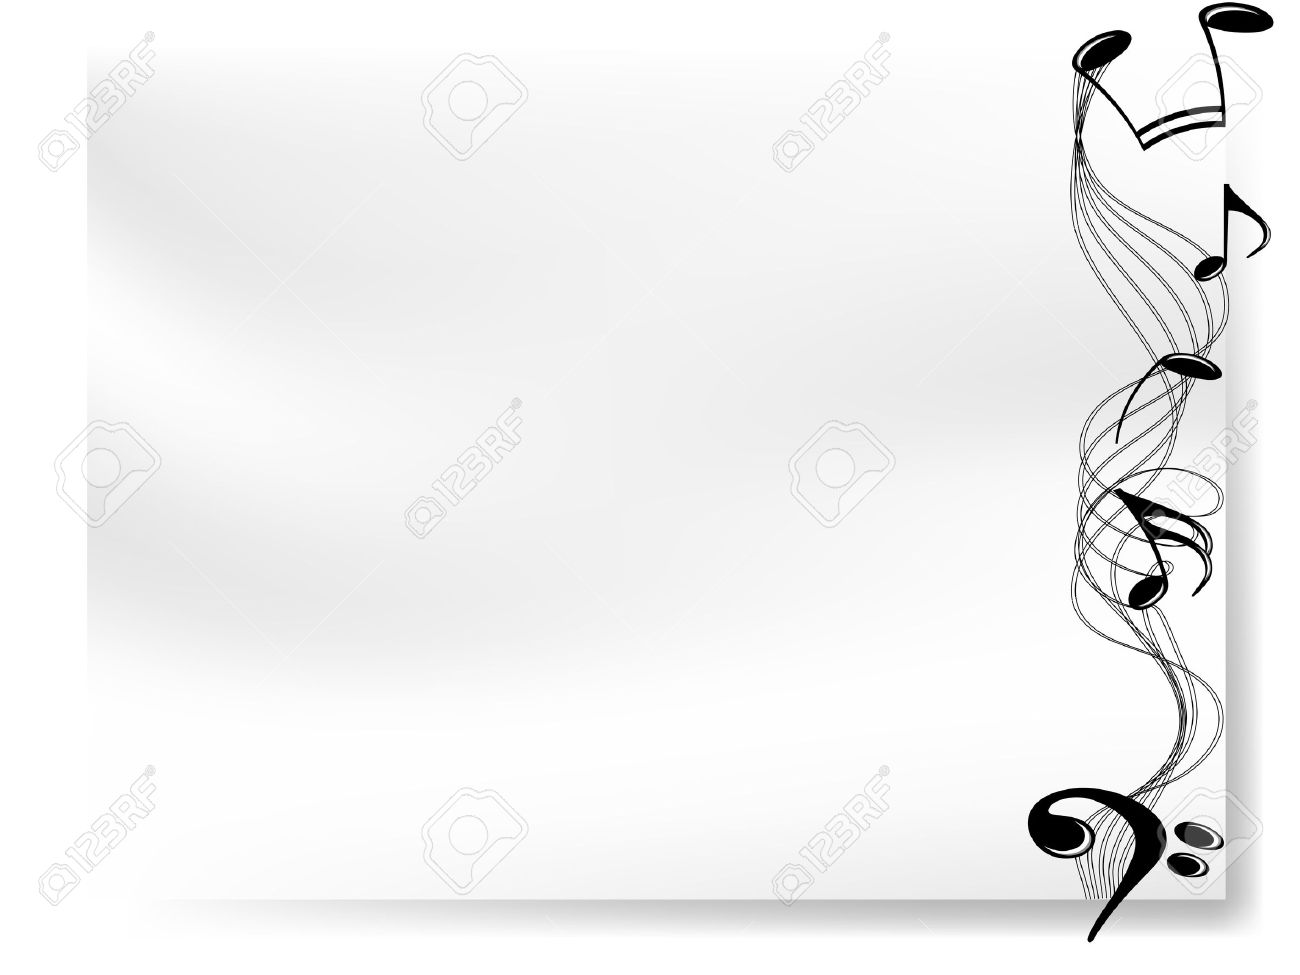 blank white paper with border of musical notes royalty free